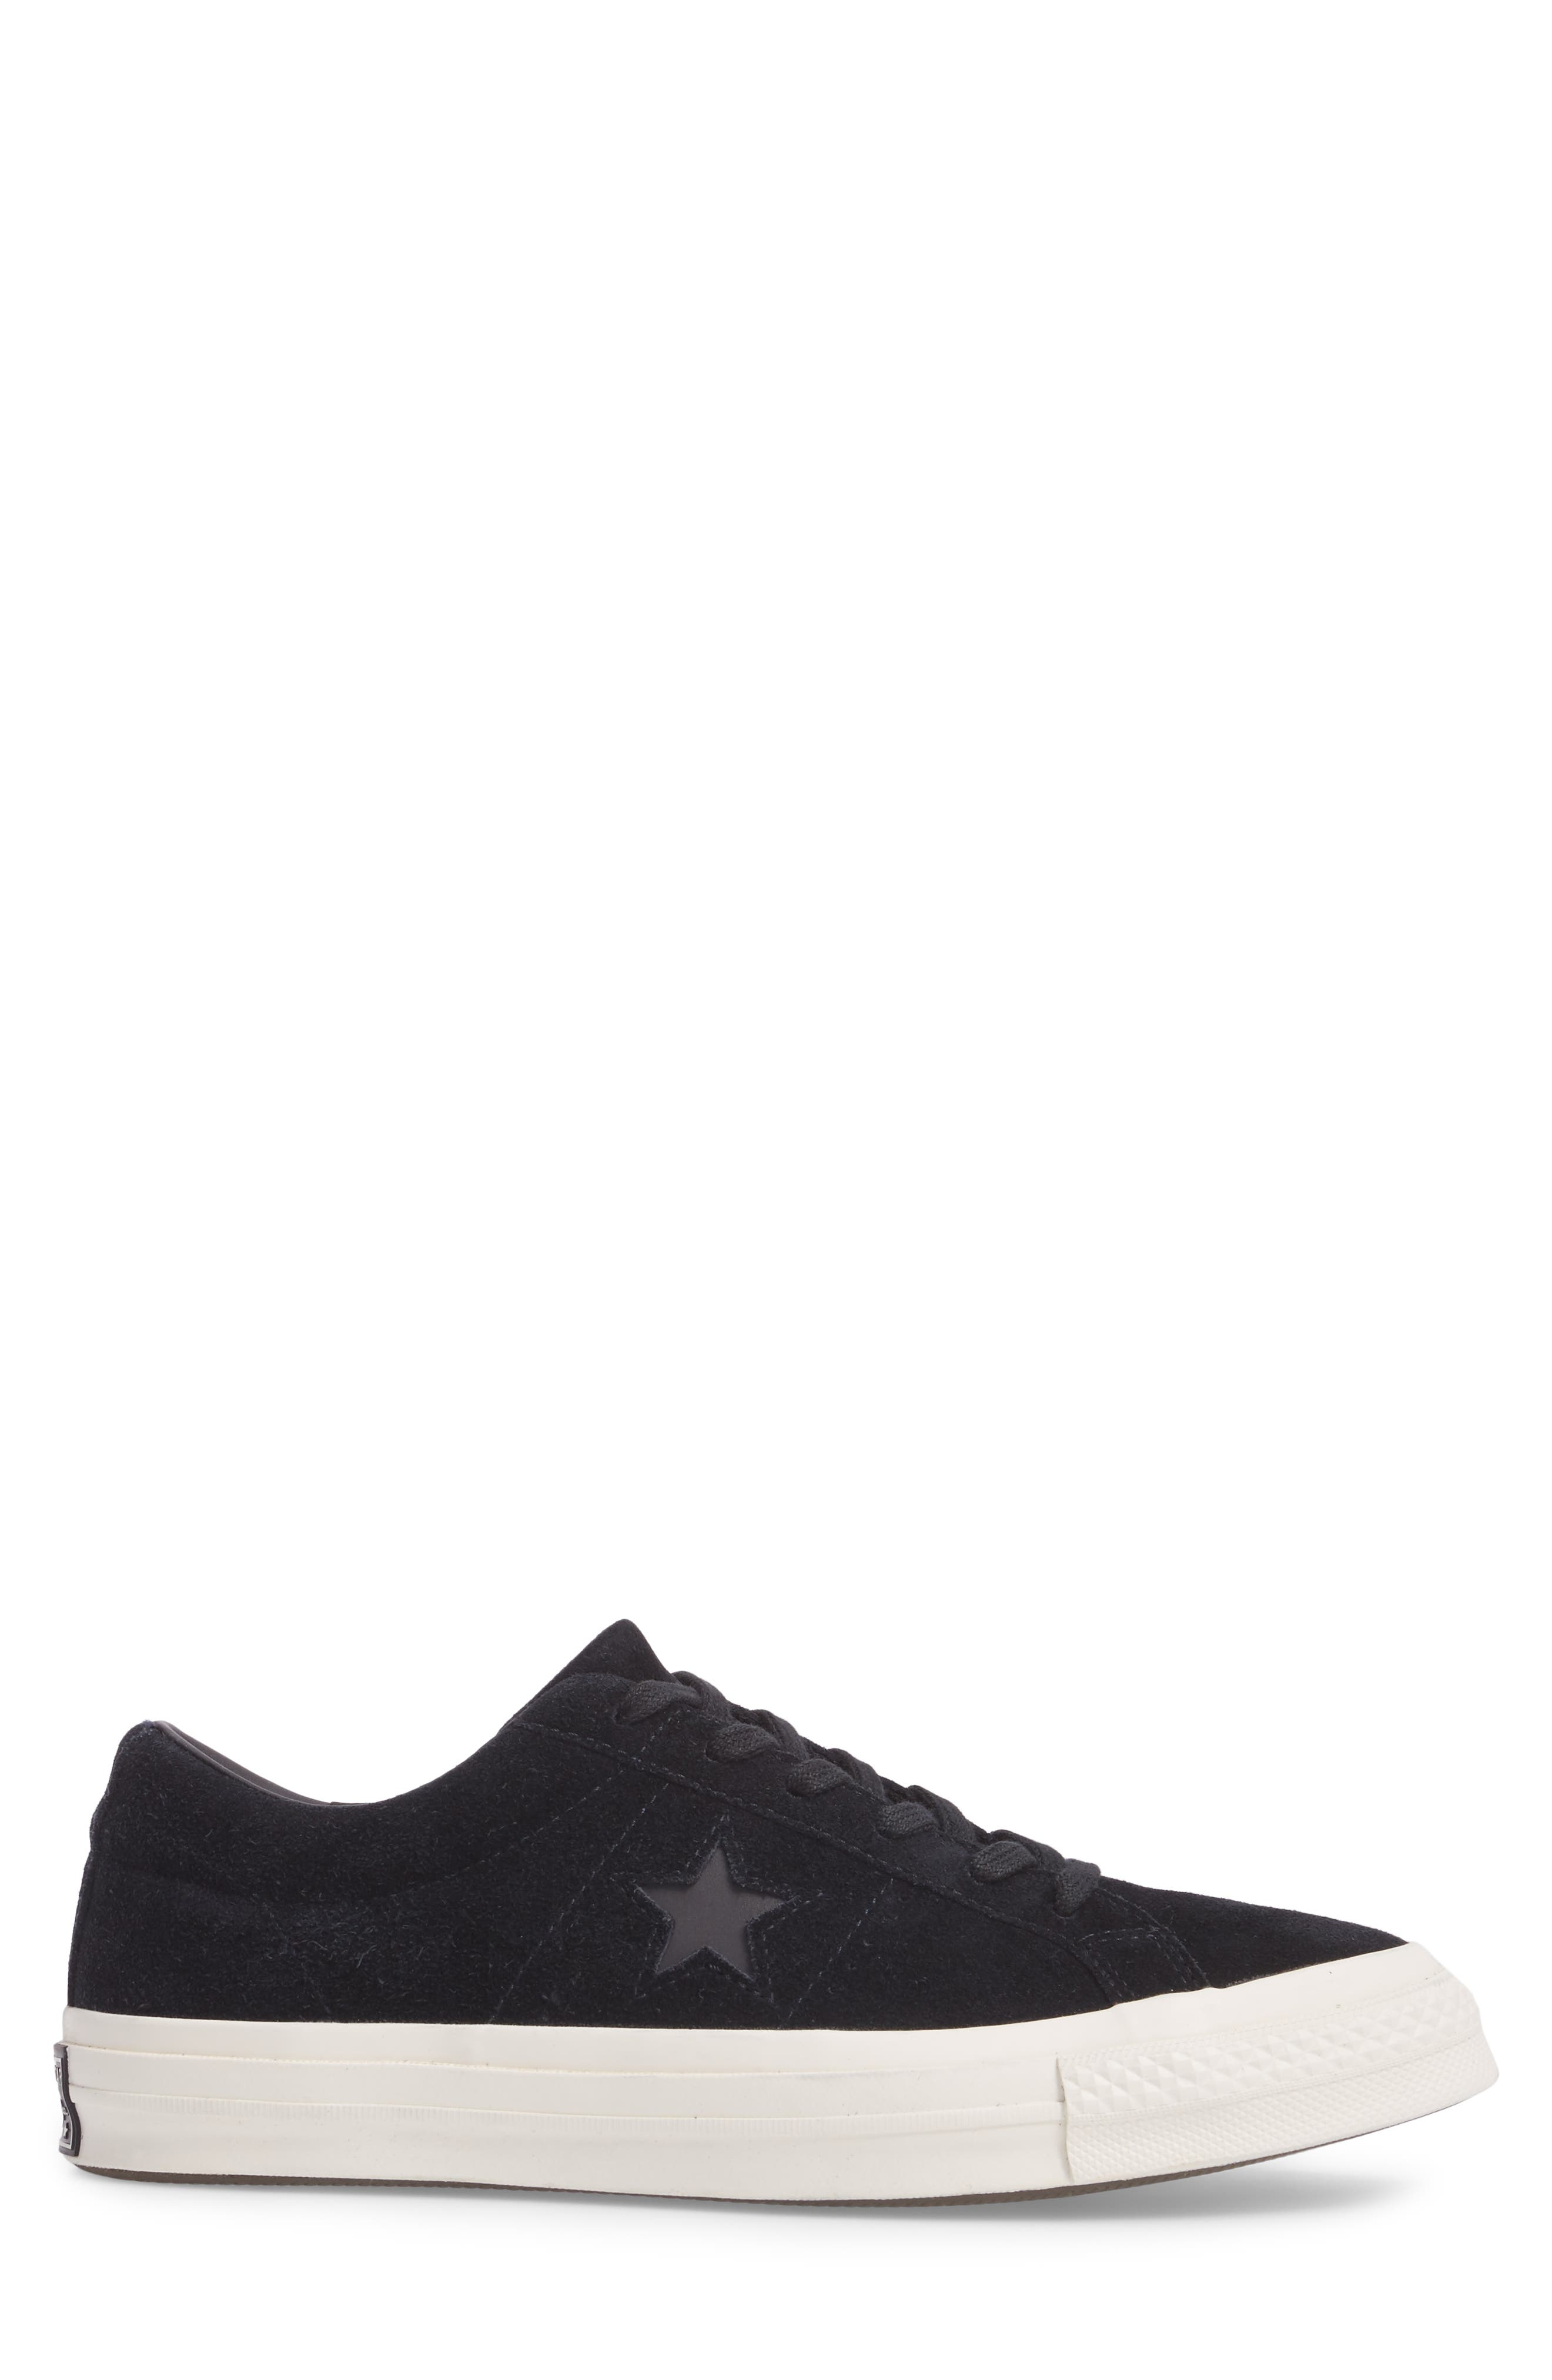 Alternate Image 3  - Converse One Star Sneaker (Men)